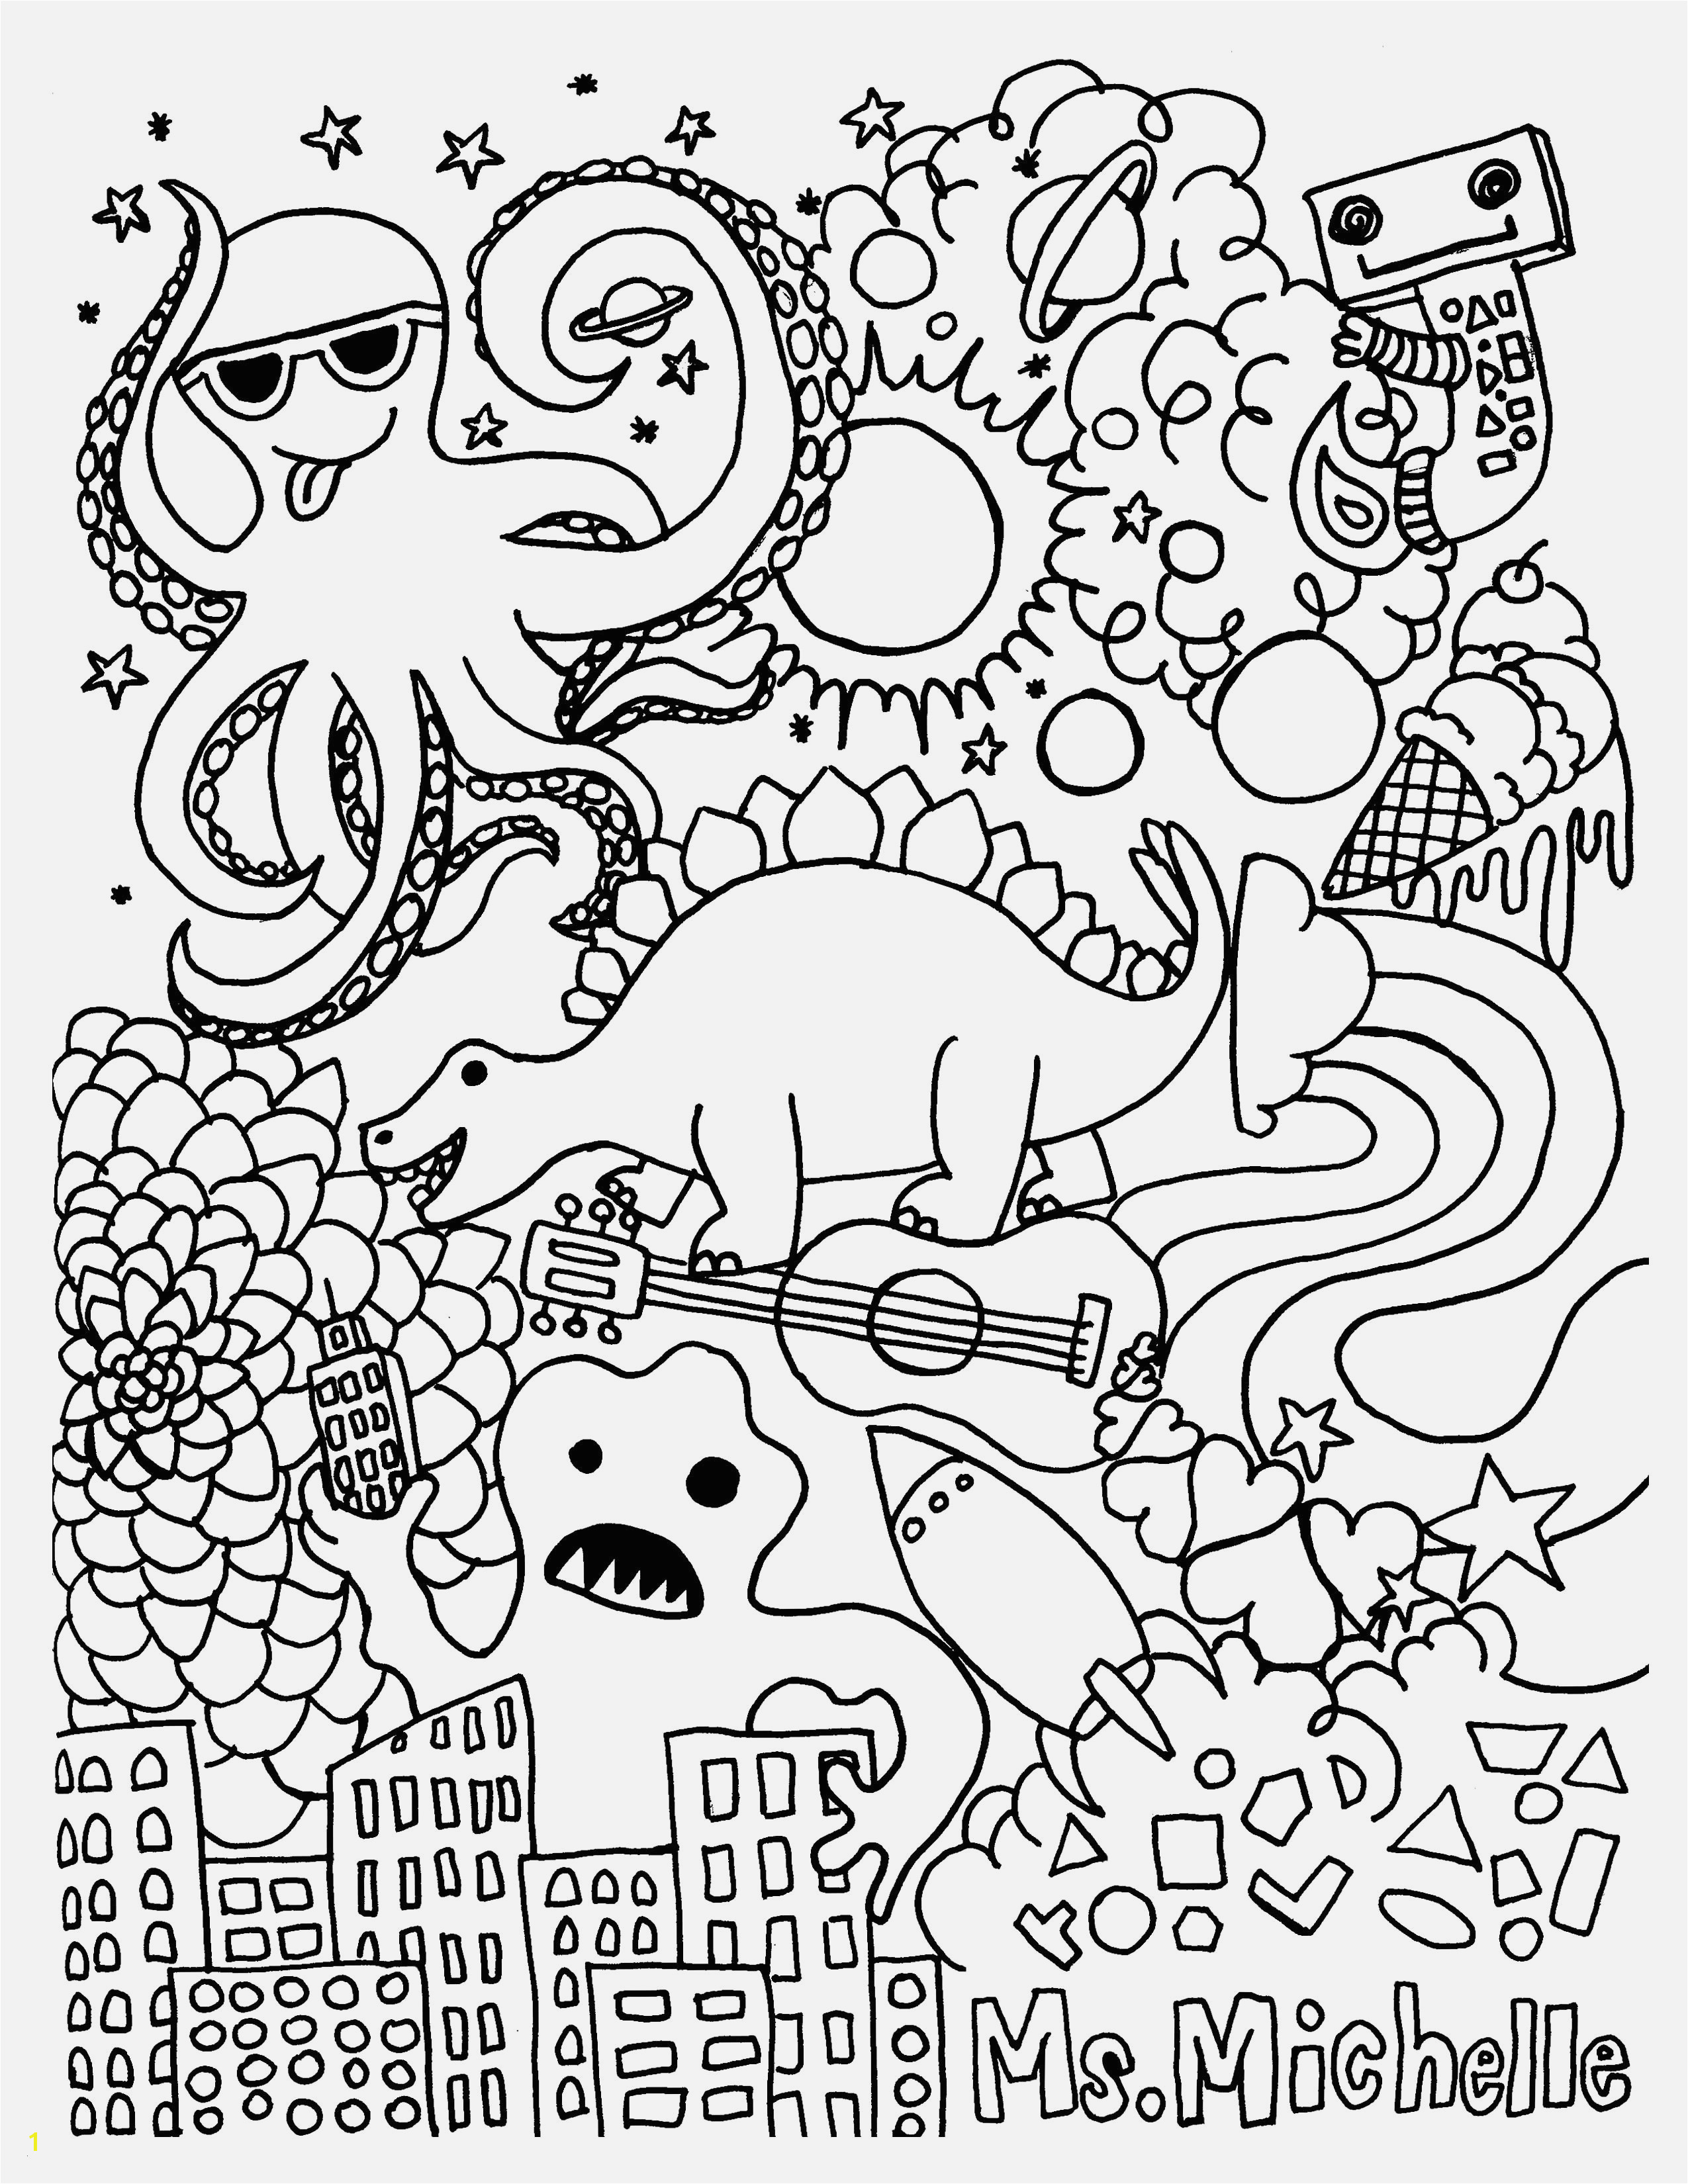 Gallery of Medusa Coloring Pages